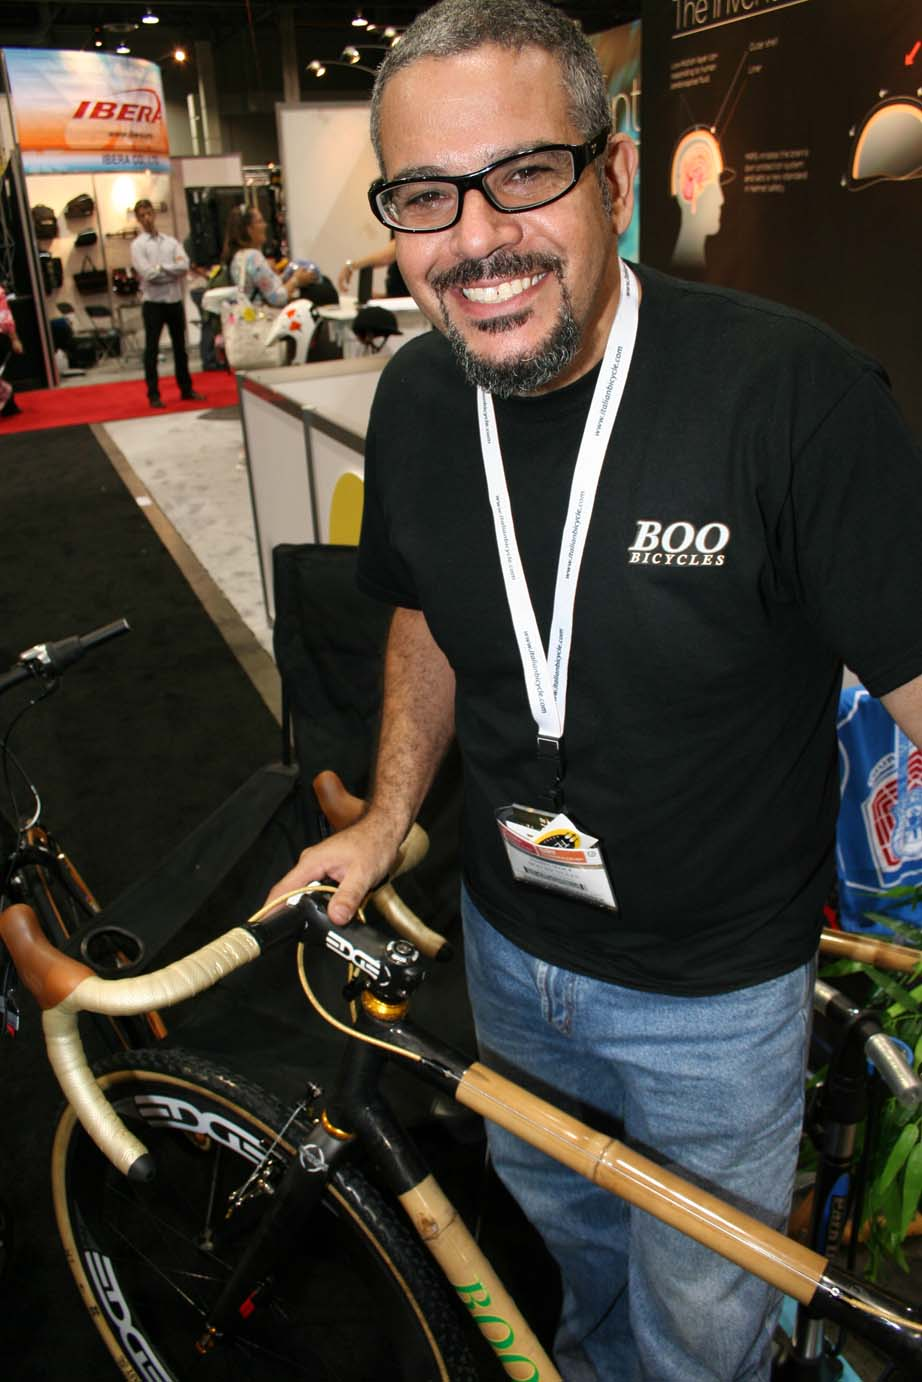 Boo\'s craftsman proudly displays the Boo cyclocross bike.?Cycloc